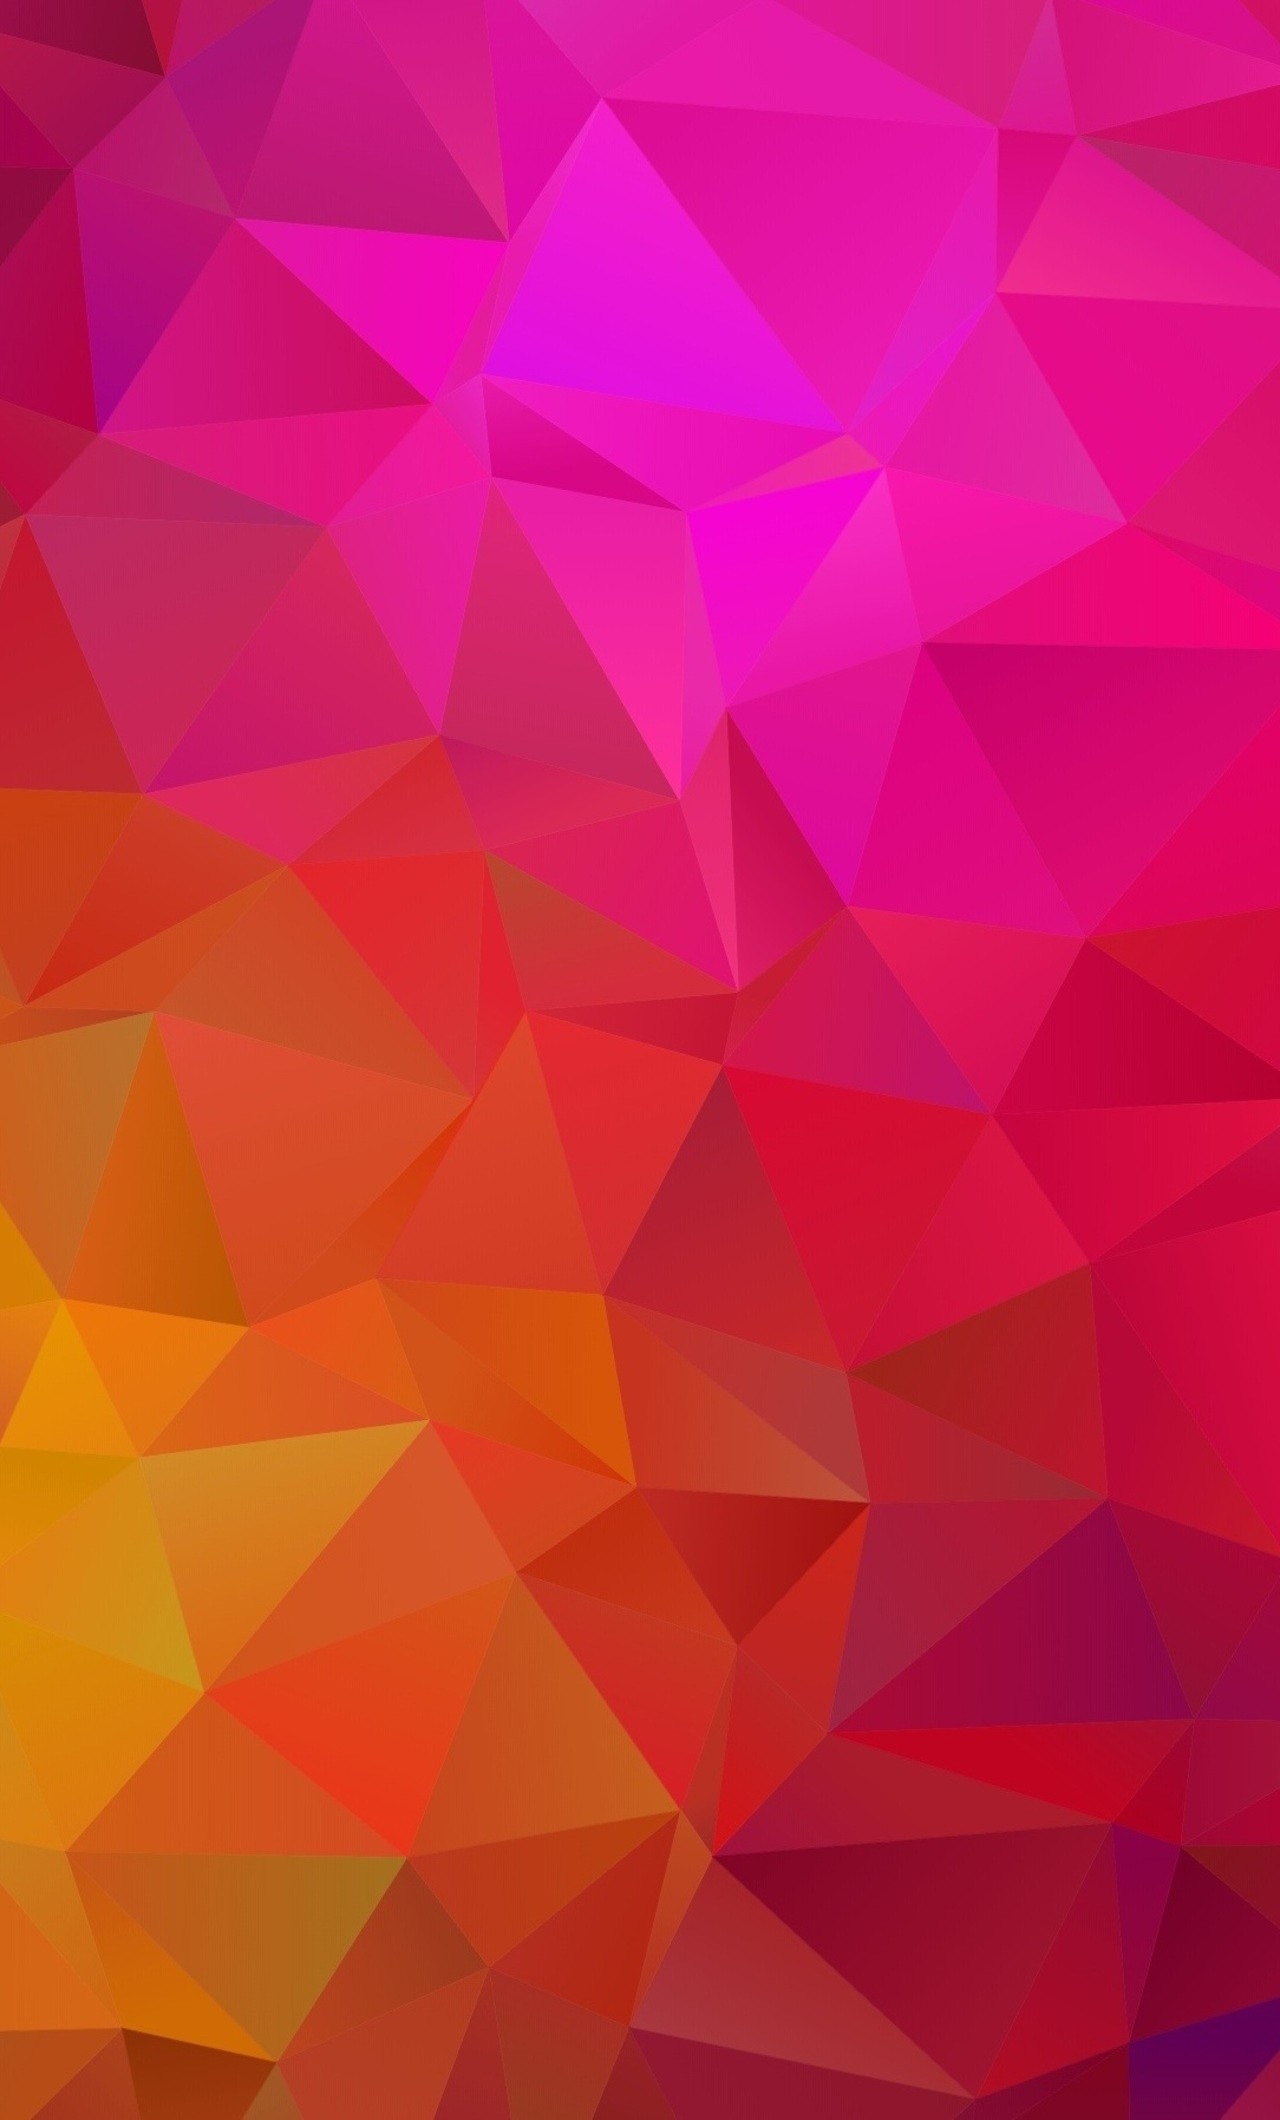 Res: 1280x2120, triangle-geometric-abstract-y9.jpg